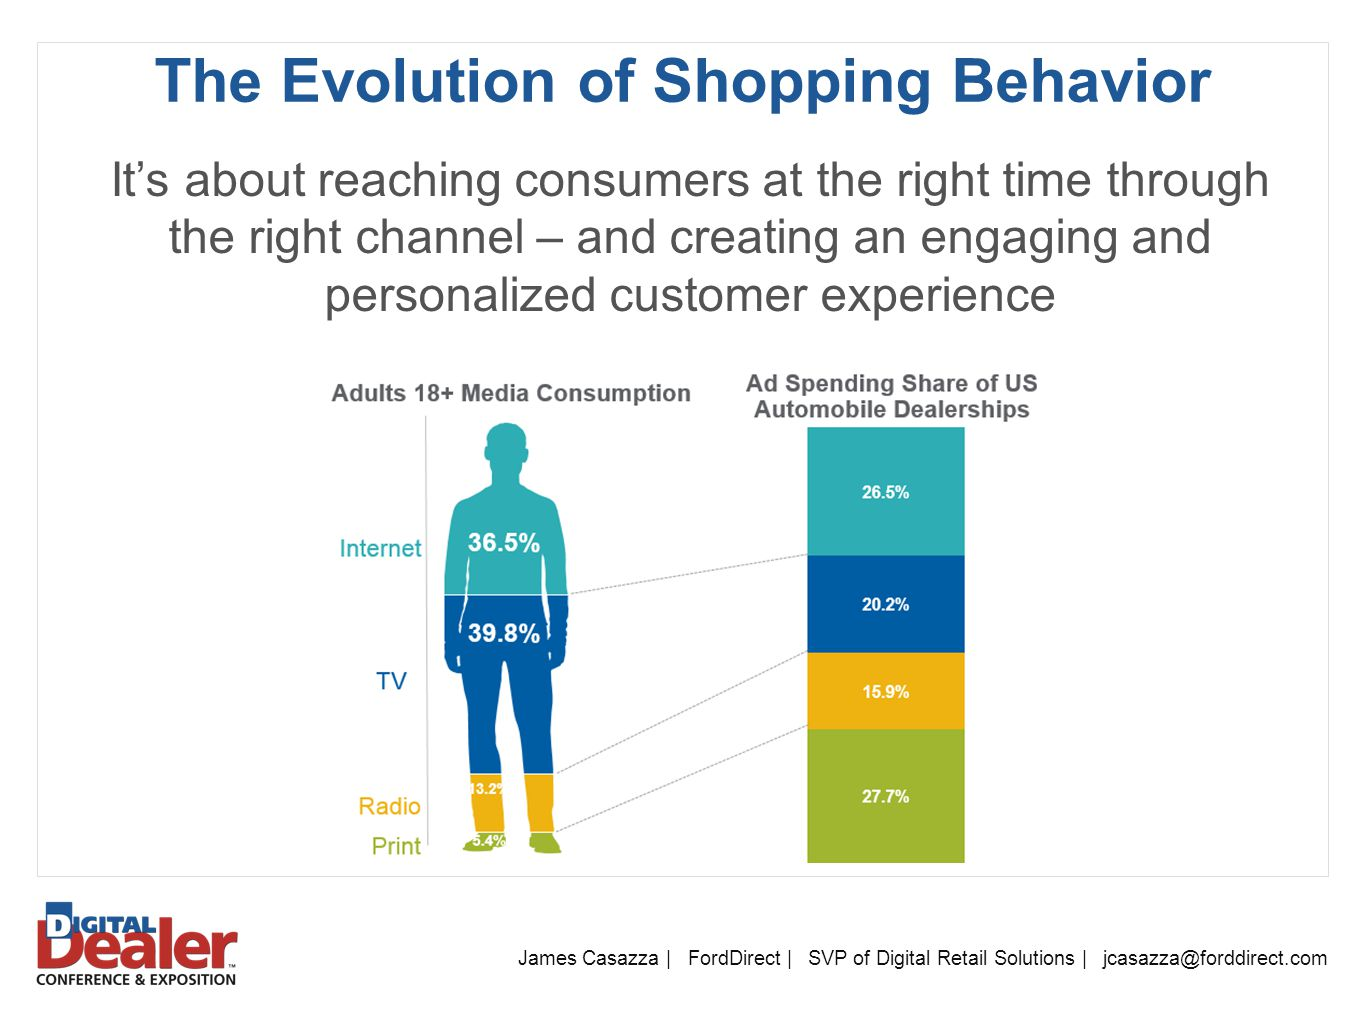 The Evolution of Shopping Behavior James Casazza | FordDirect | SVP of Digital Retail Solutions | jcasazza@forddirect.com It's about reaching consumers at the right time through the right channel – and creating an engaging and personalized customer experience